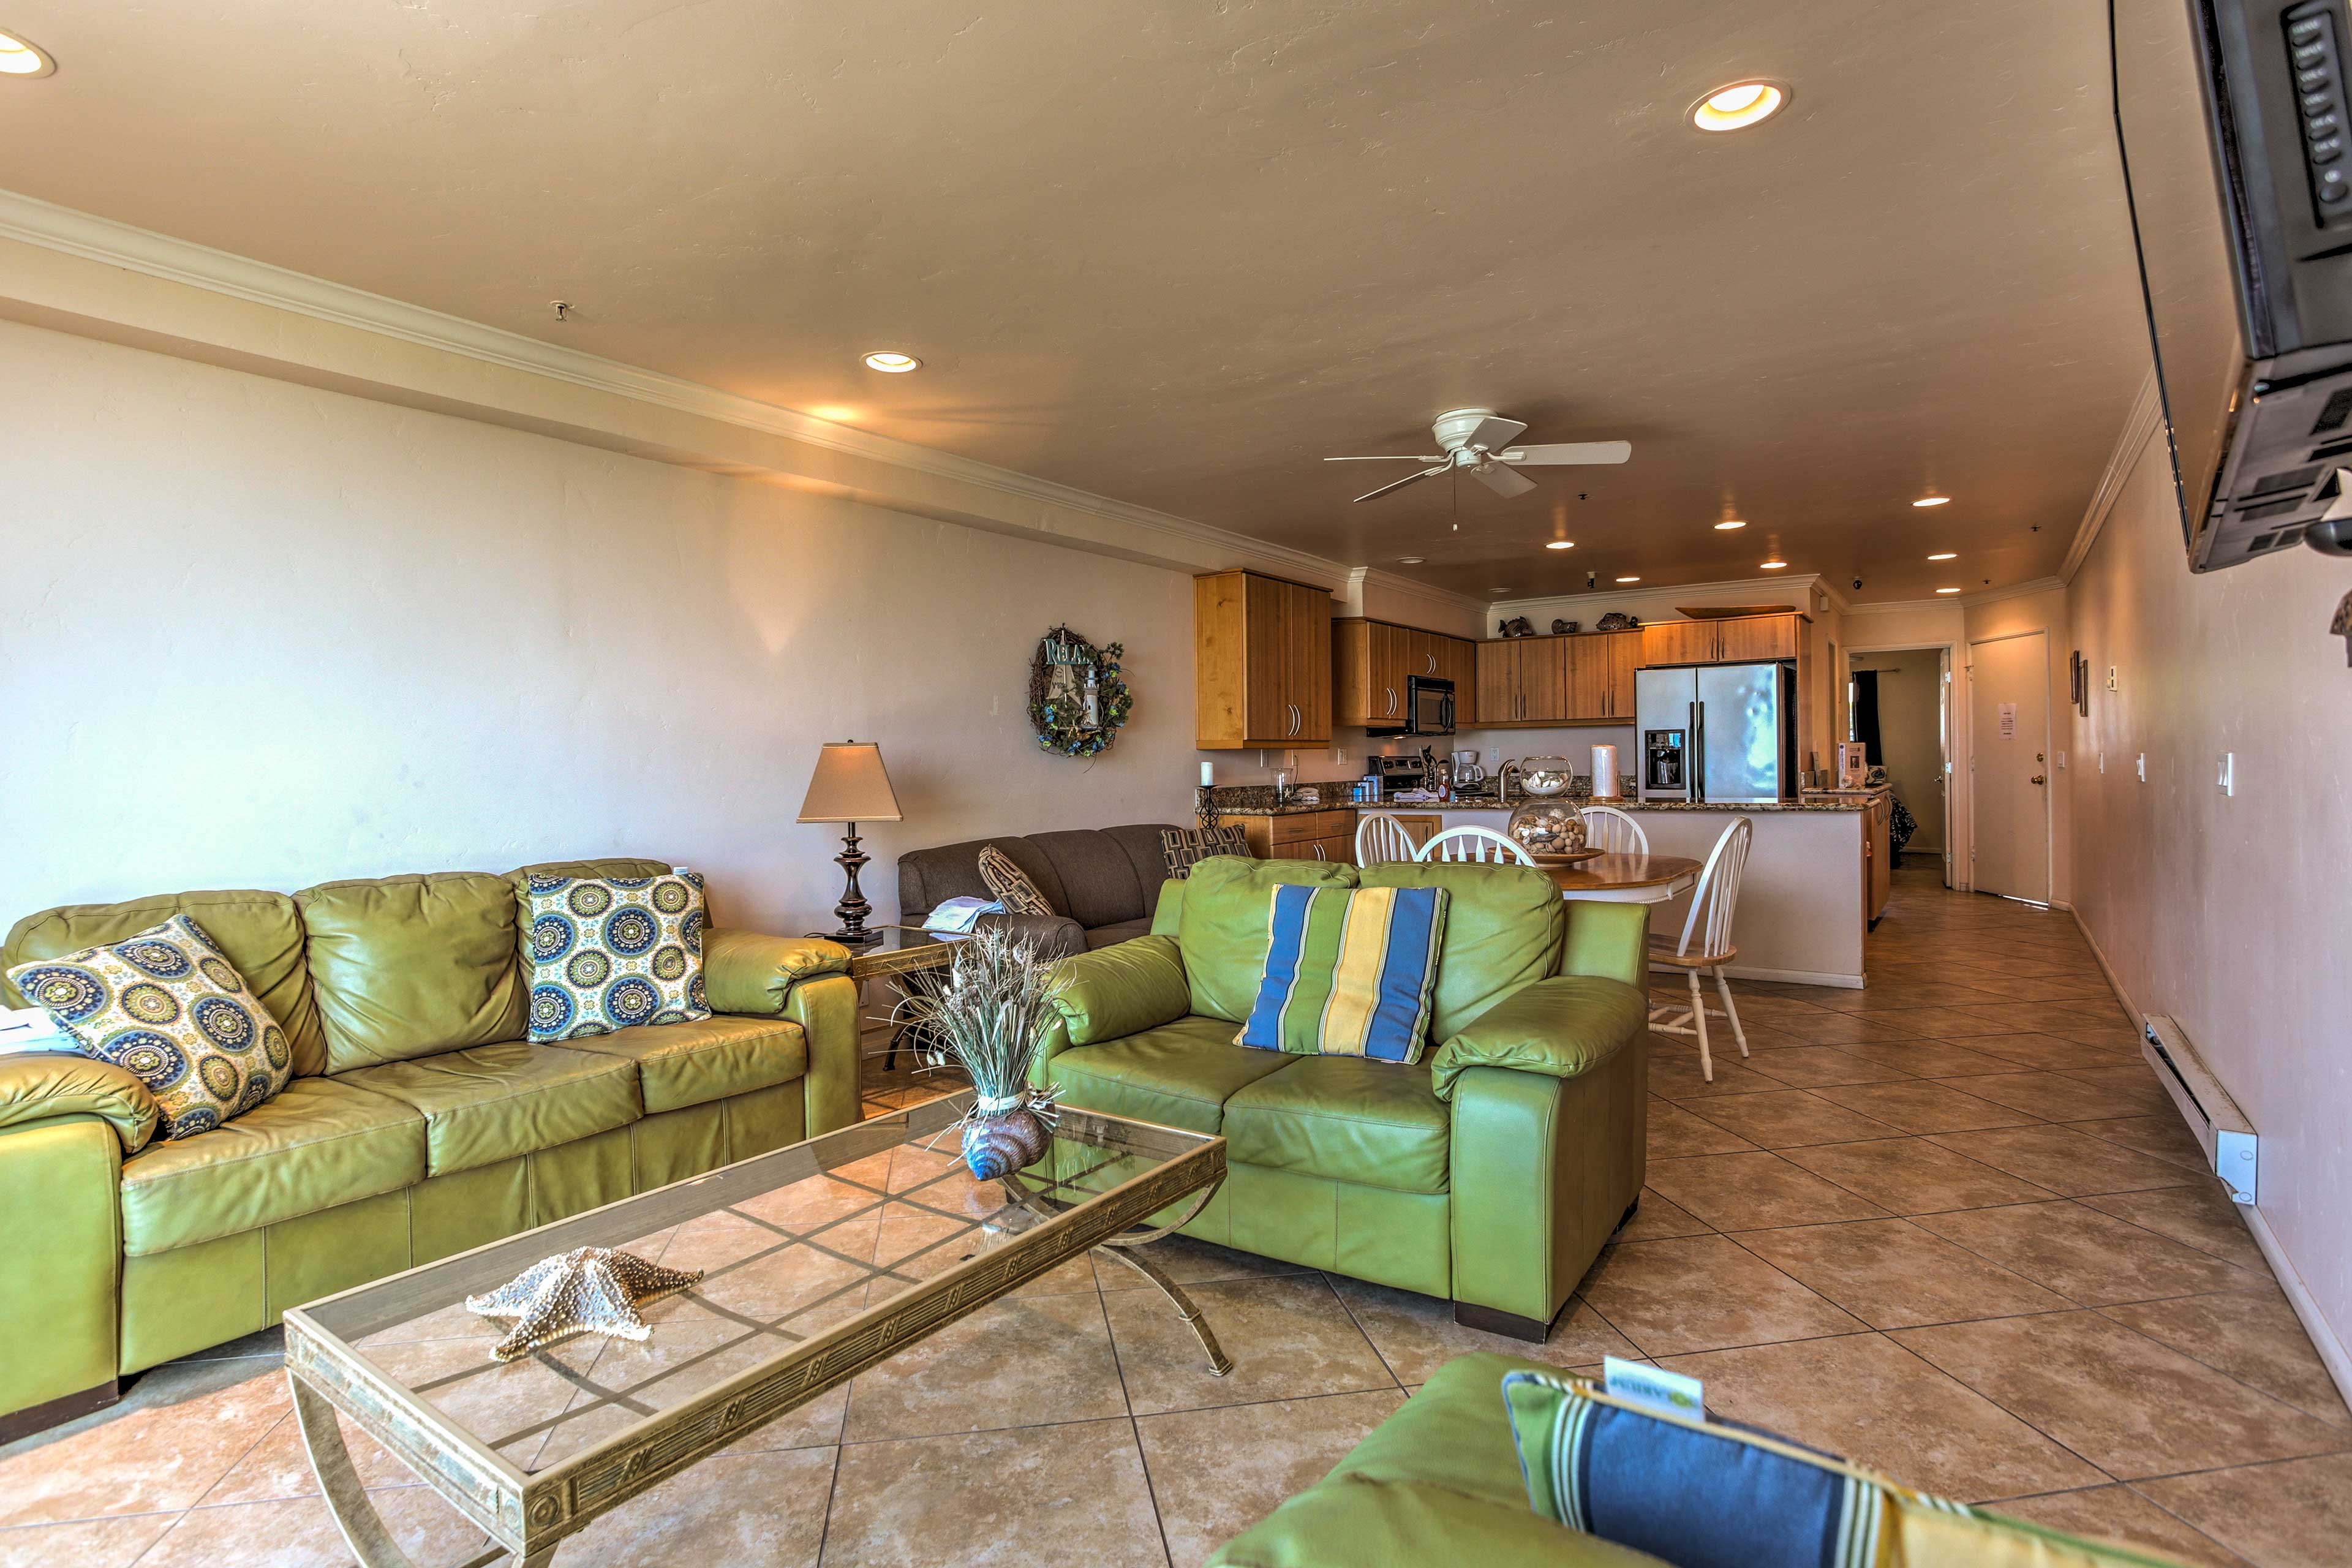 Make yourself at home in this welcoming living space.